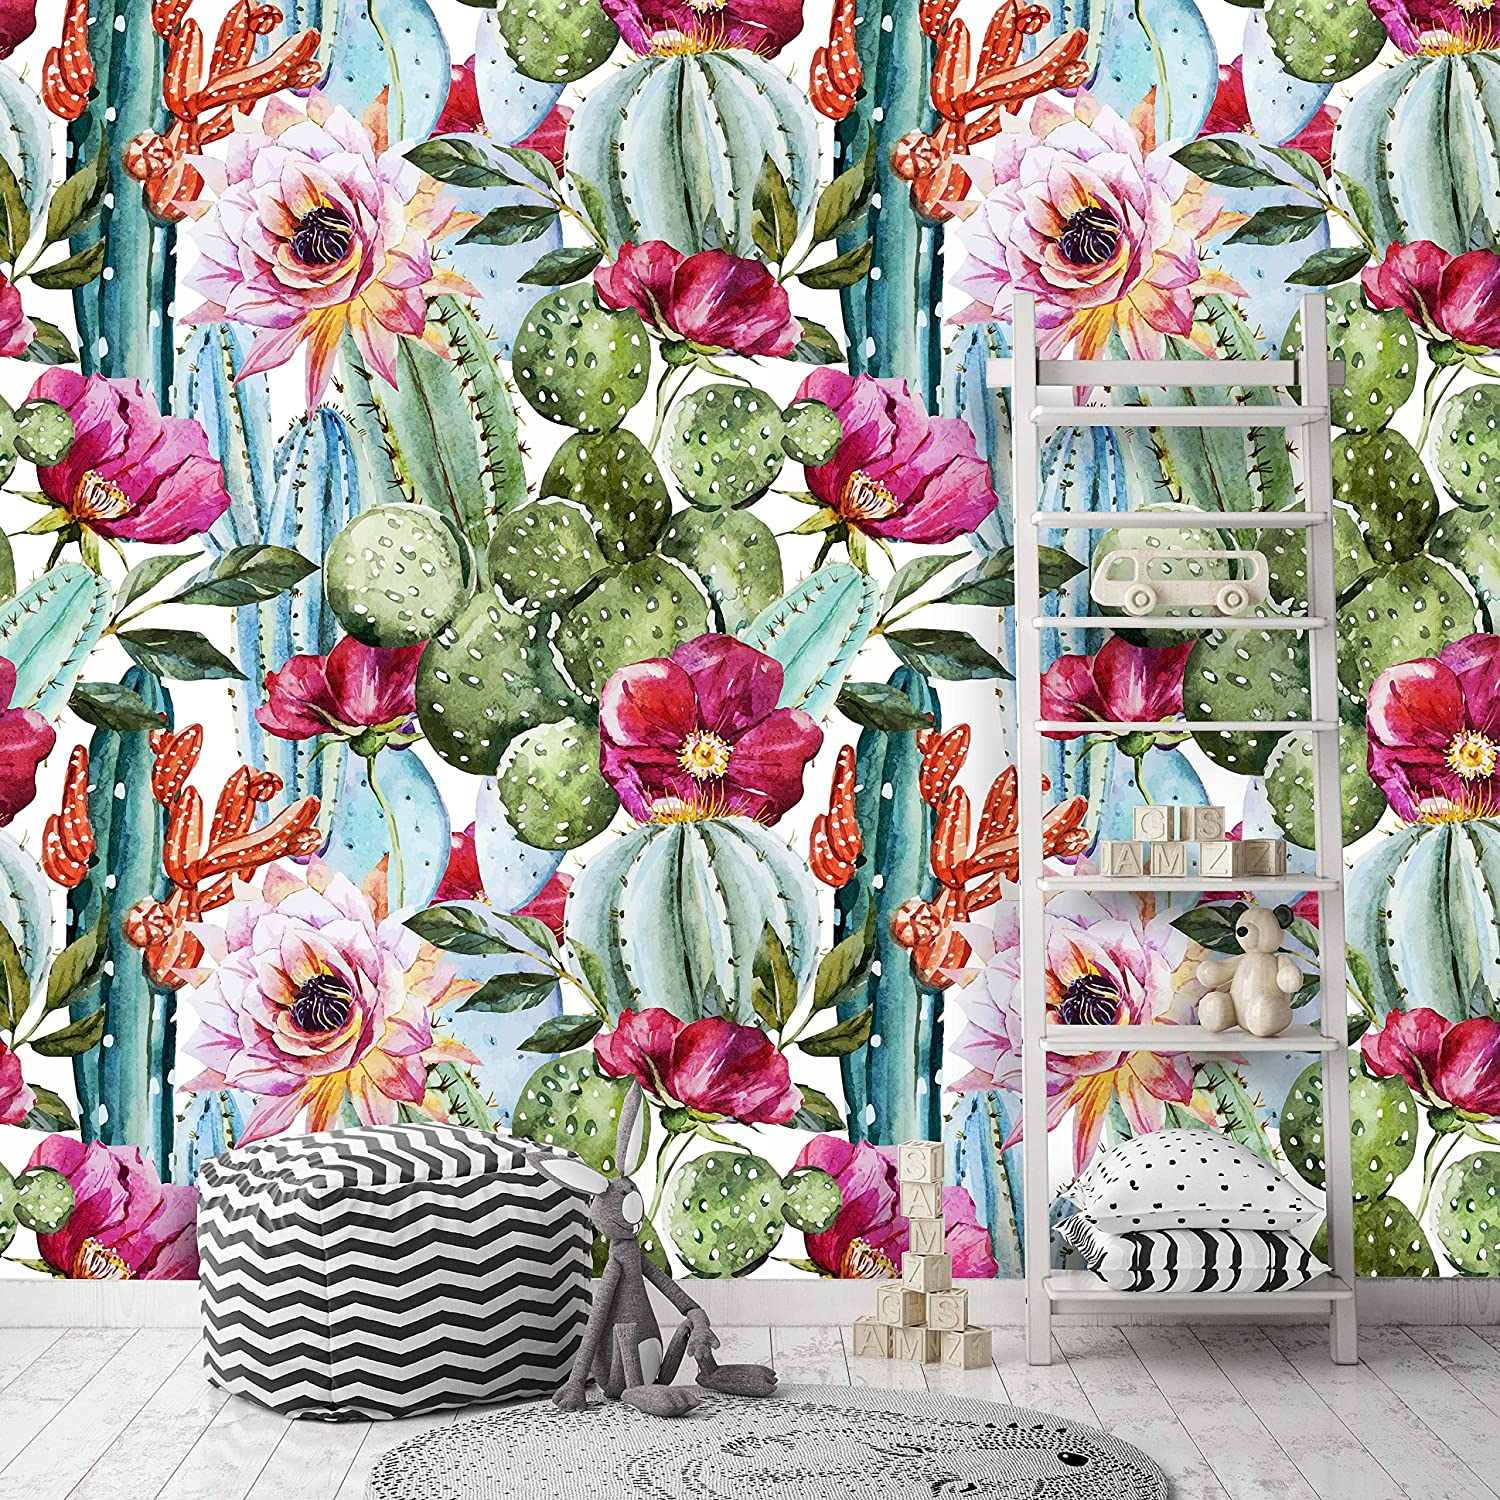 Removable Peel N Stick Wallpaper Self Adhesive Wall Mural Watercolor Tropical Pattern Nursery Decor Tropical Flowers Roses And Cactus 24 W X 60 H Inches Amazon Com